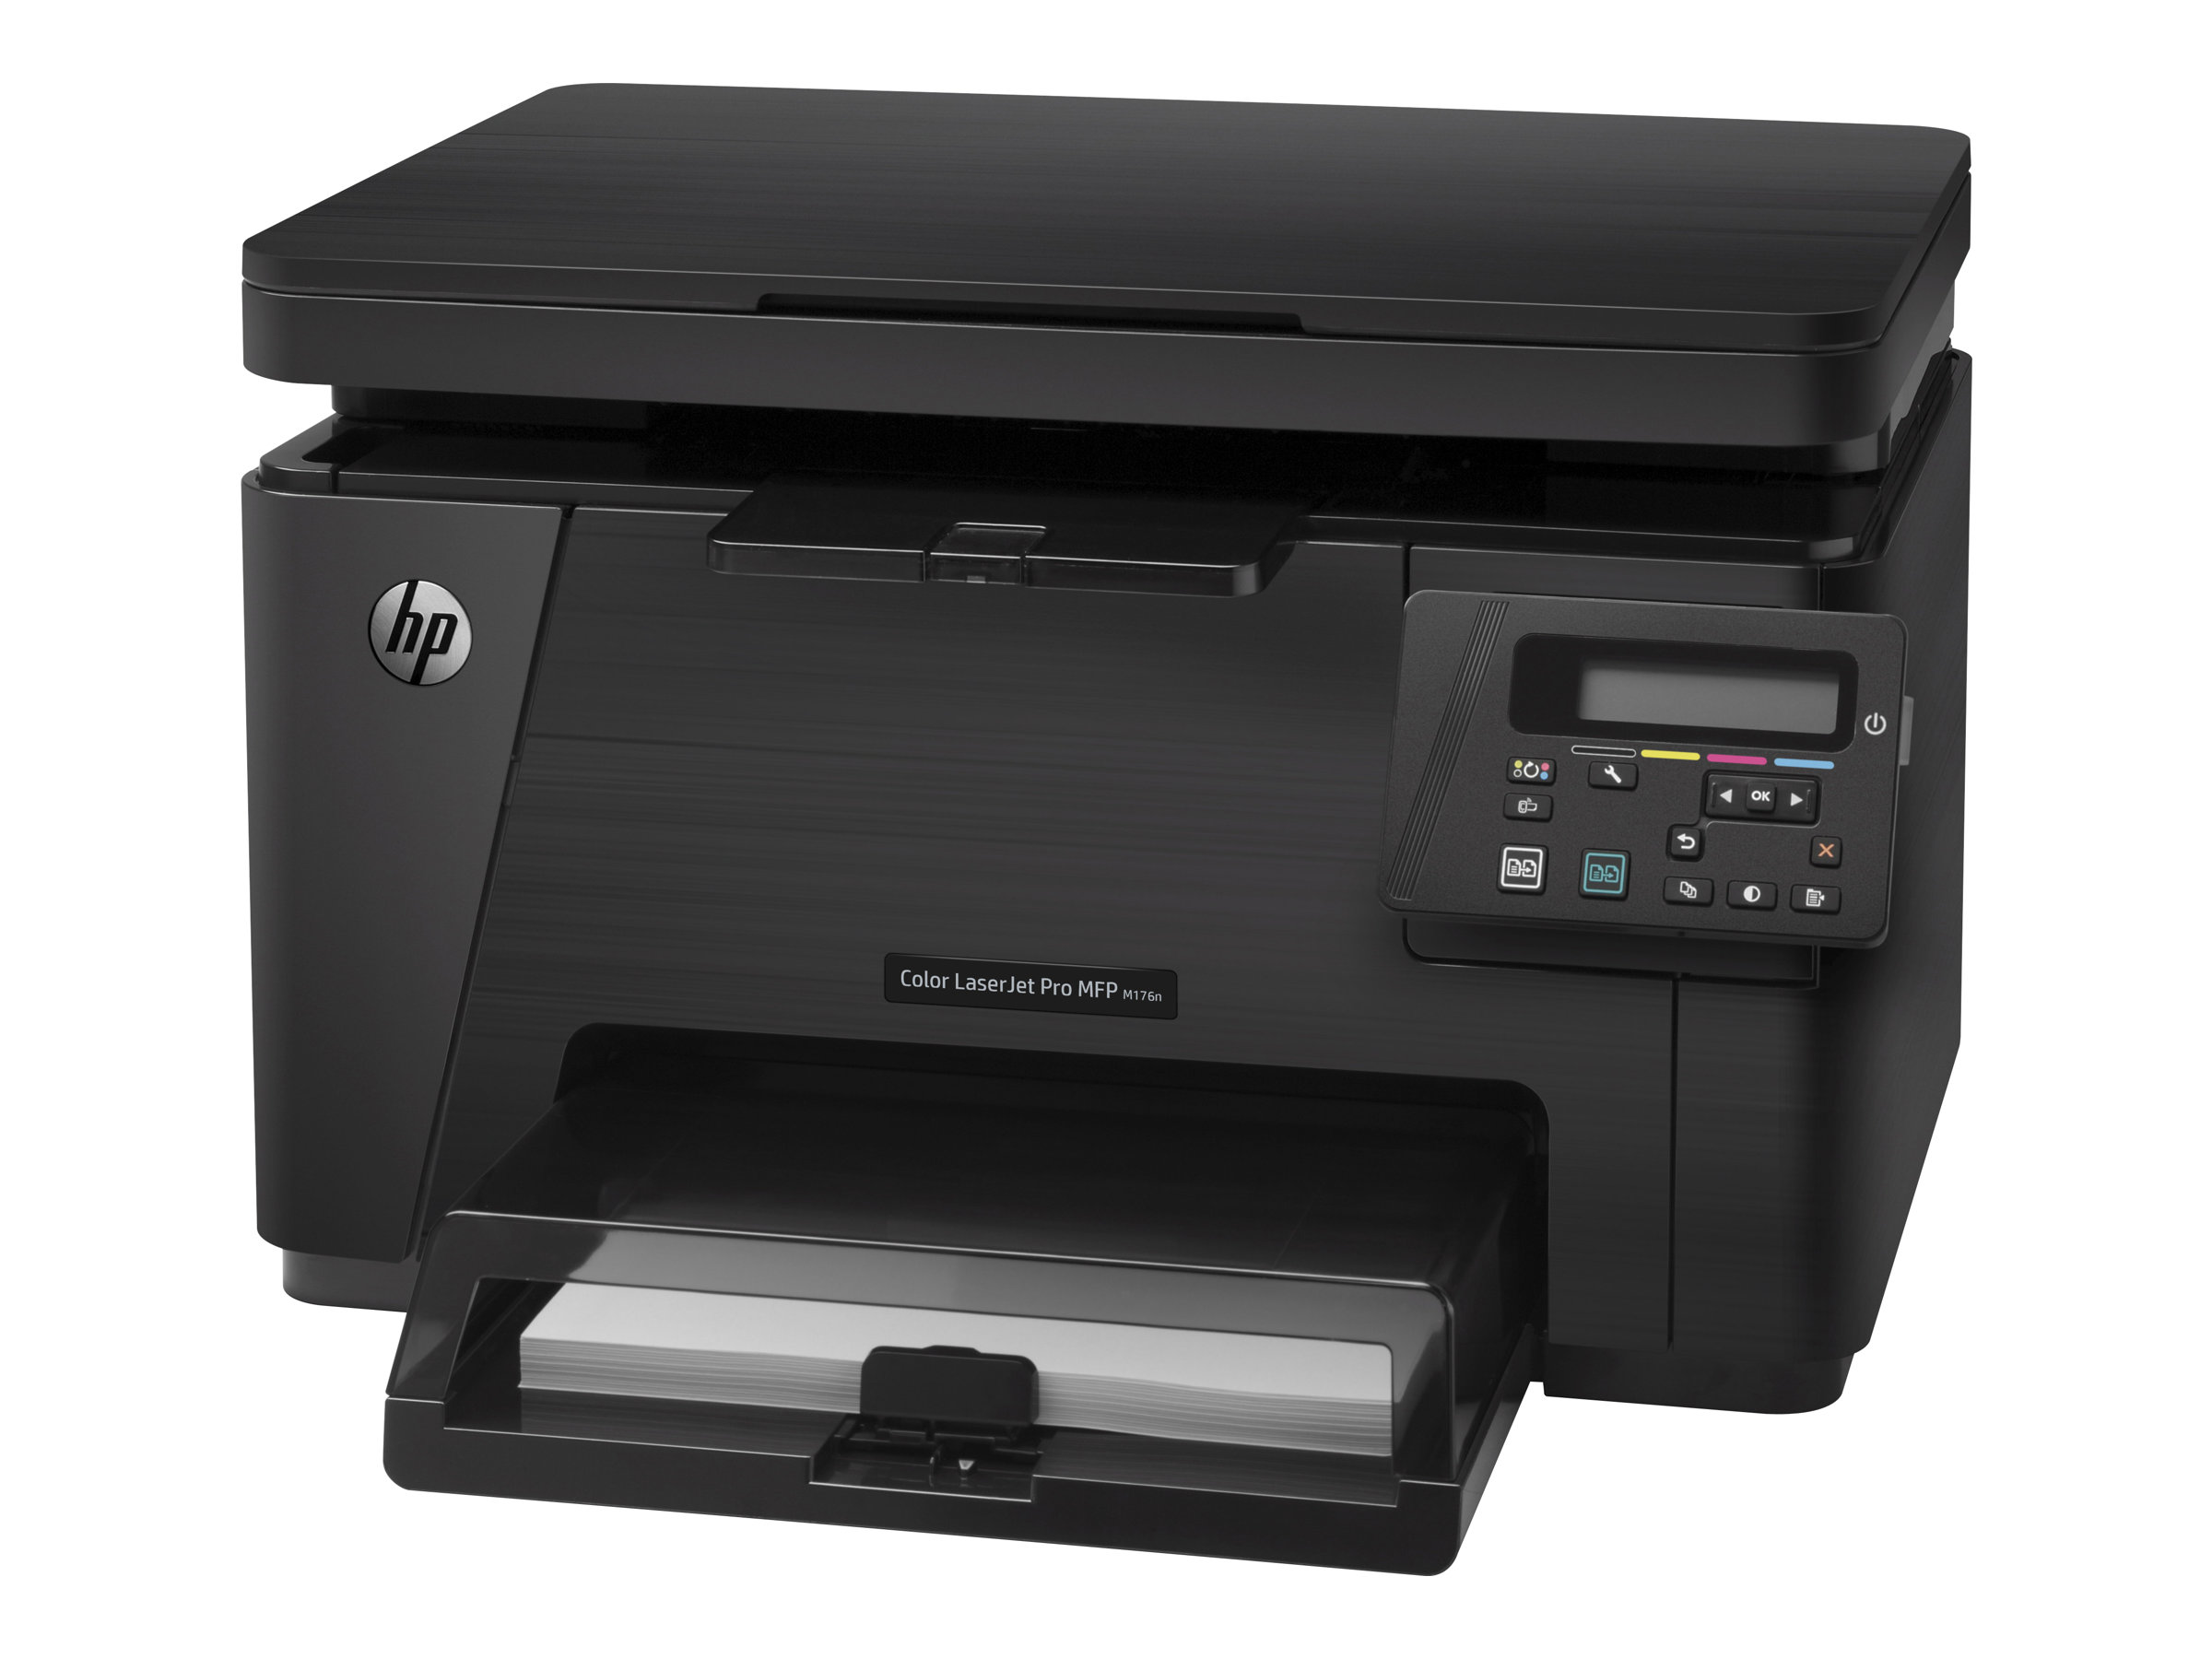 hp laserjet pro mfp m176n imprimante multifonctions couleur imprimantes laser neuves. Black Bedroom Furniture Sets. Home Design Ideas